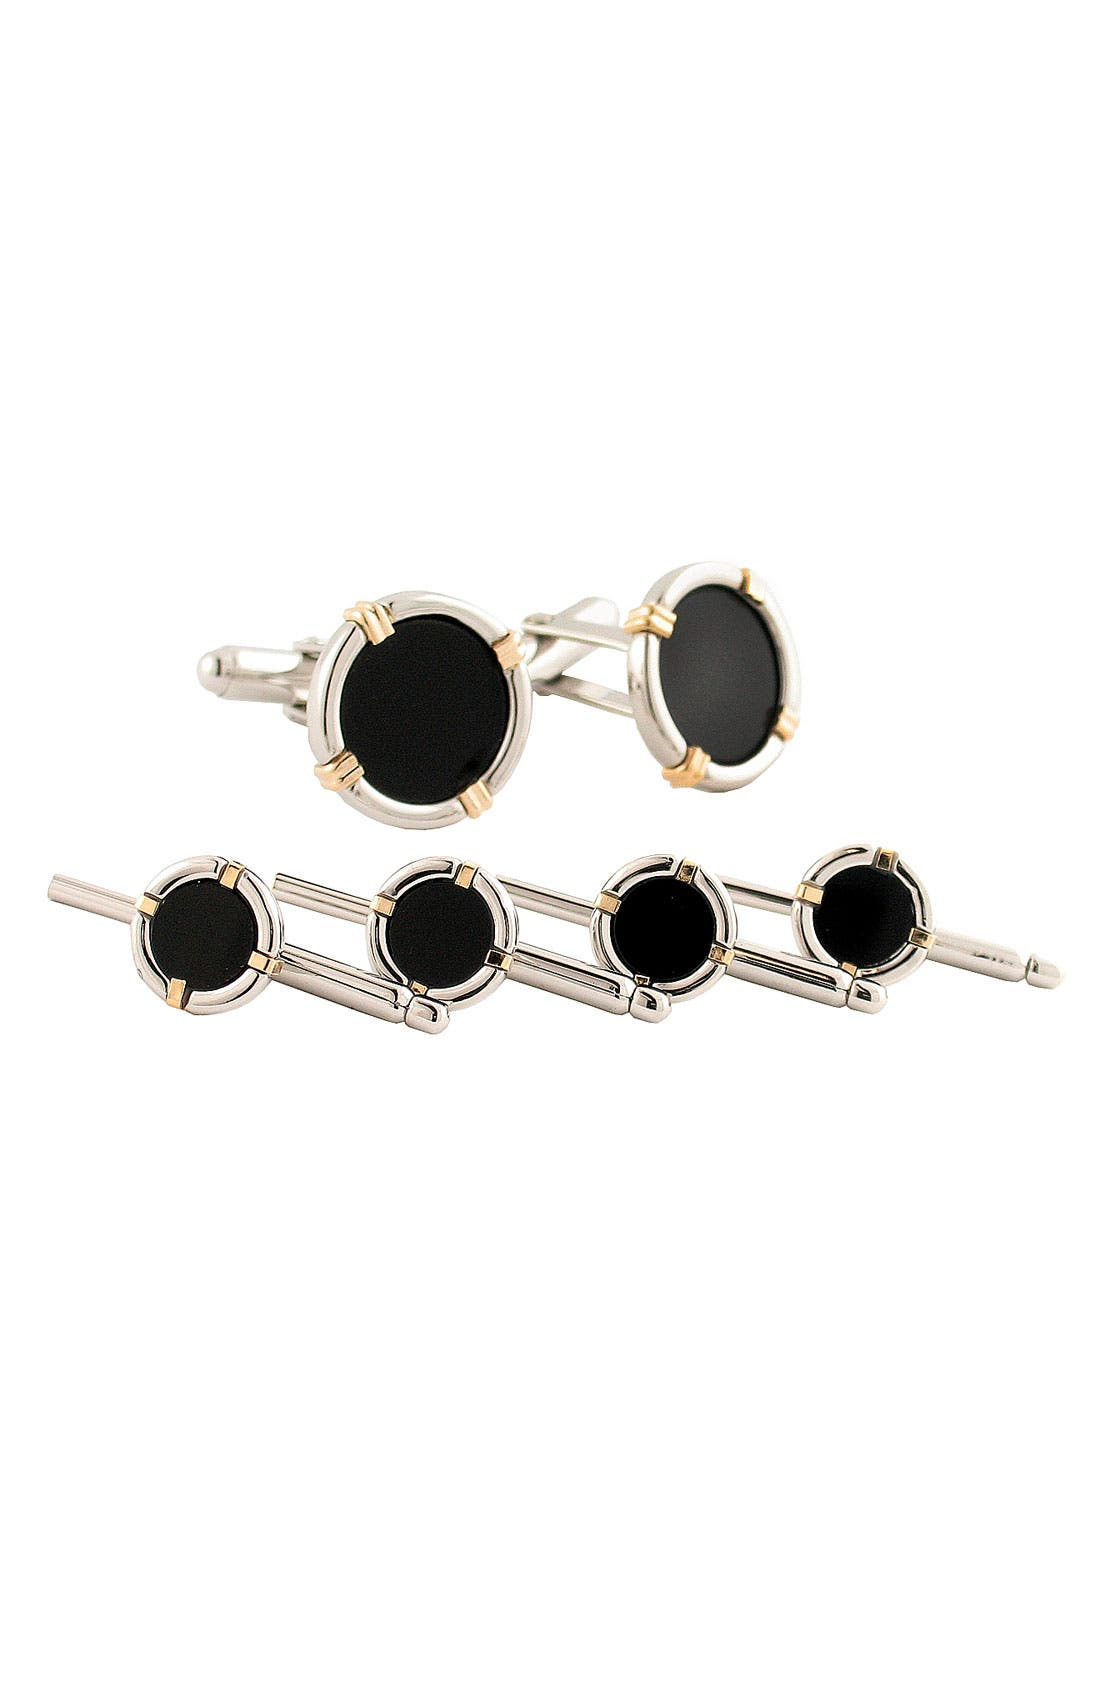 David Donahue Inlaid Sterling Silver Cuff Link & Stud Set